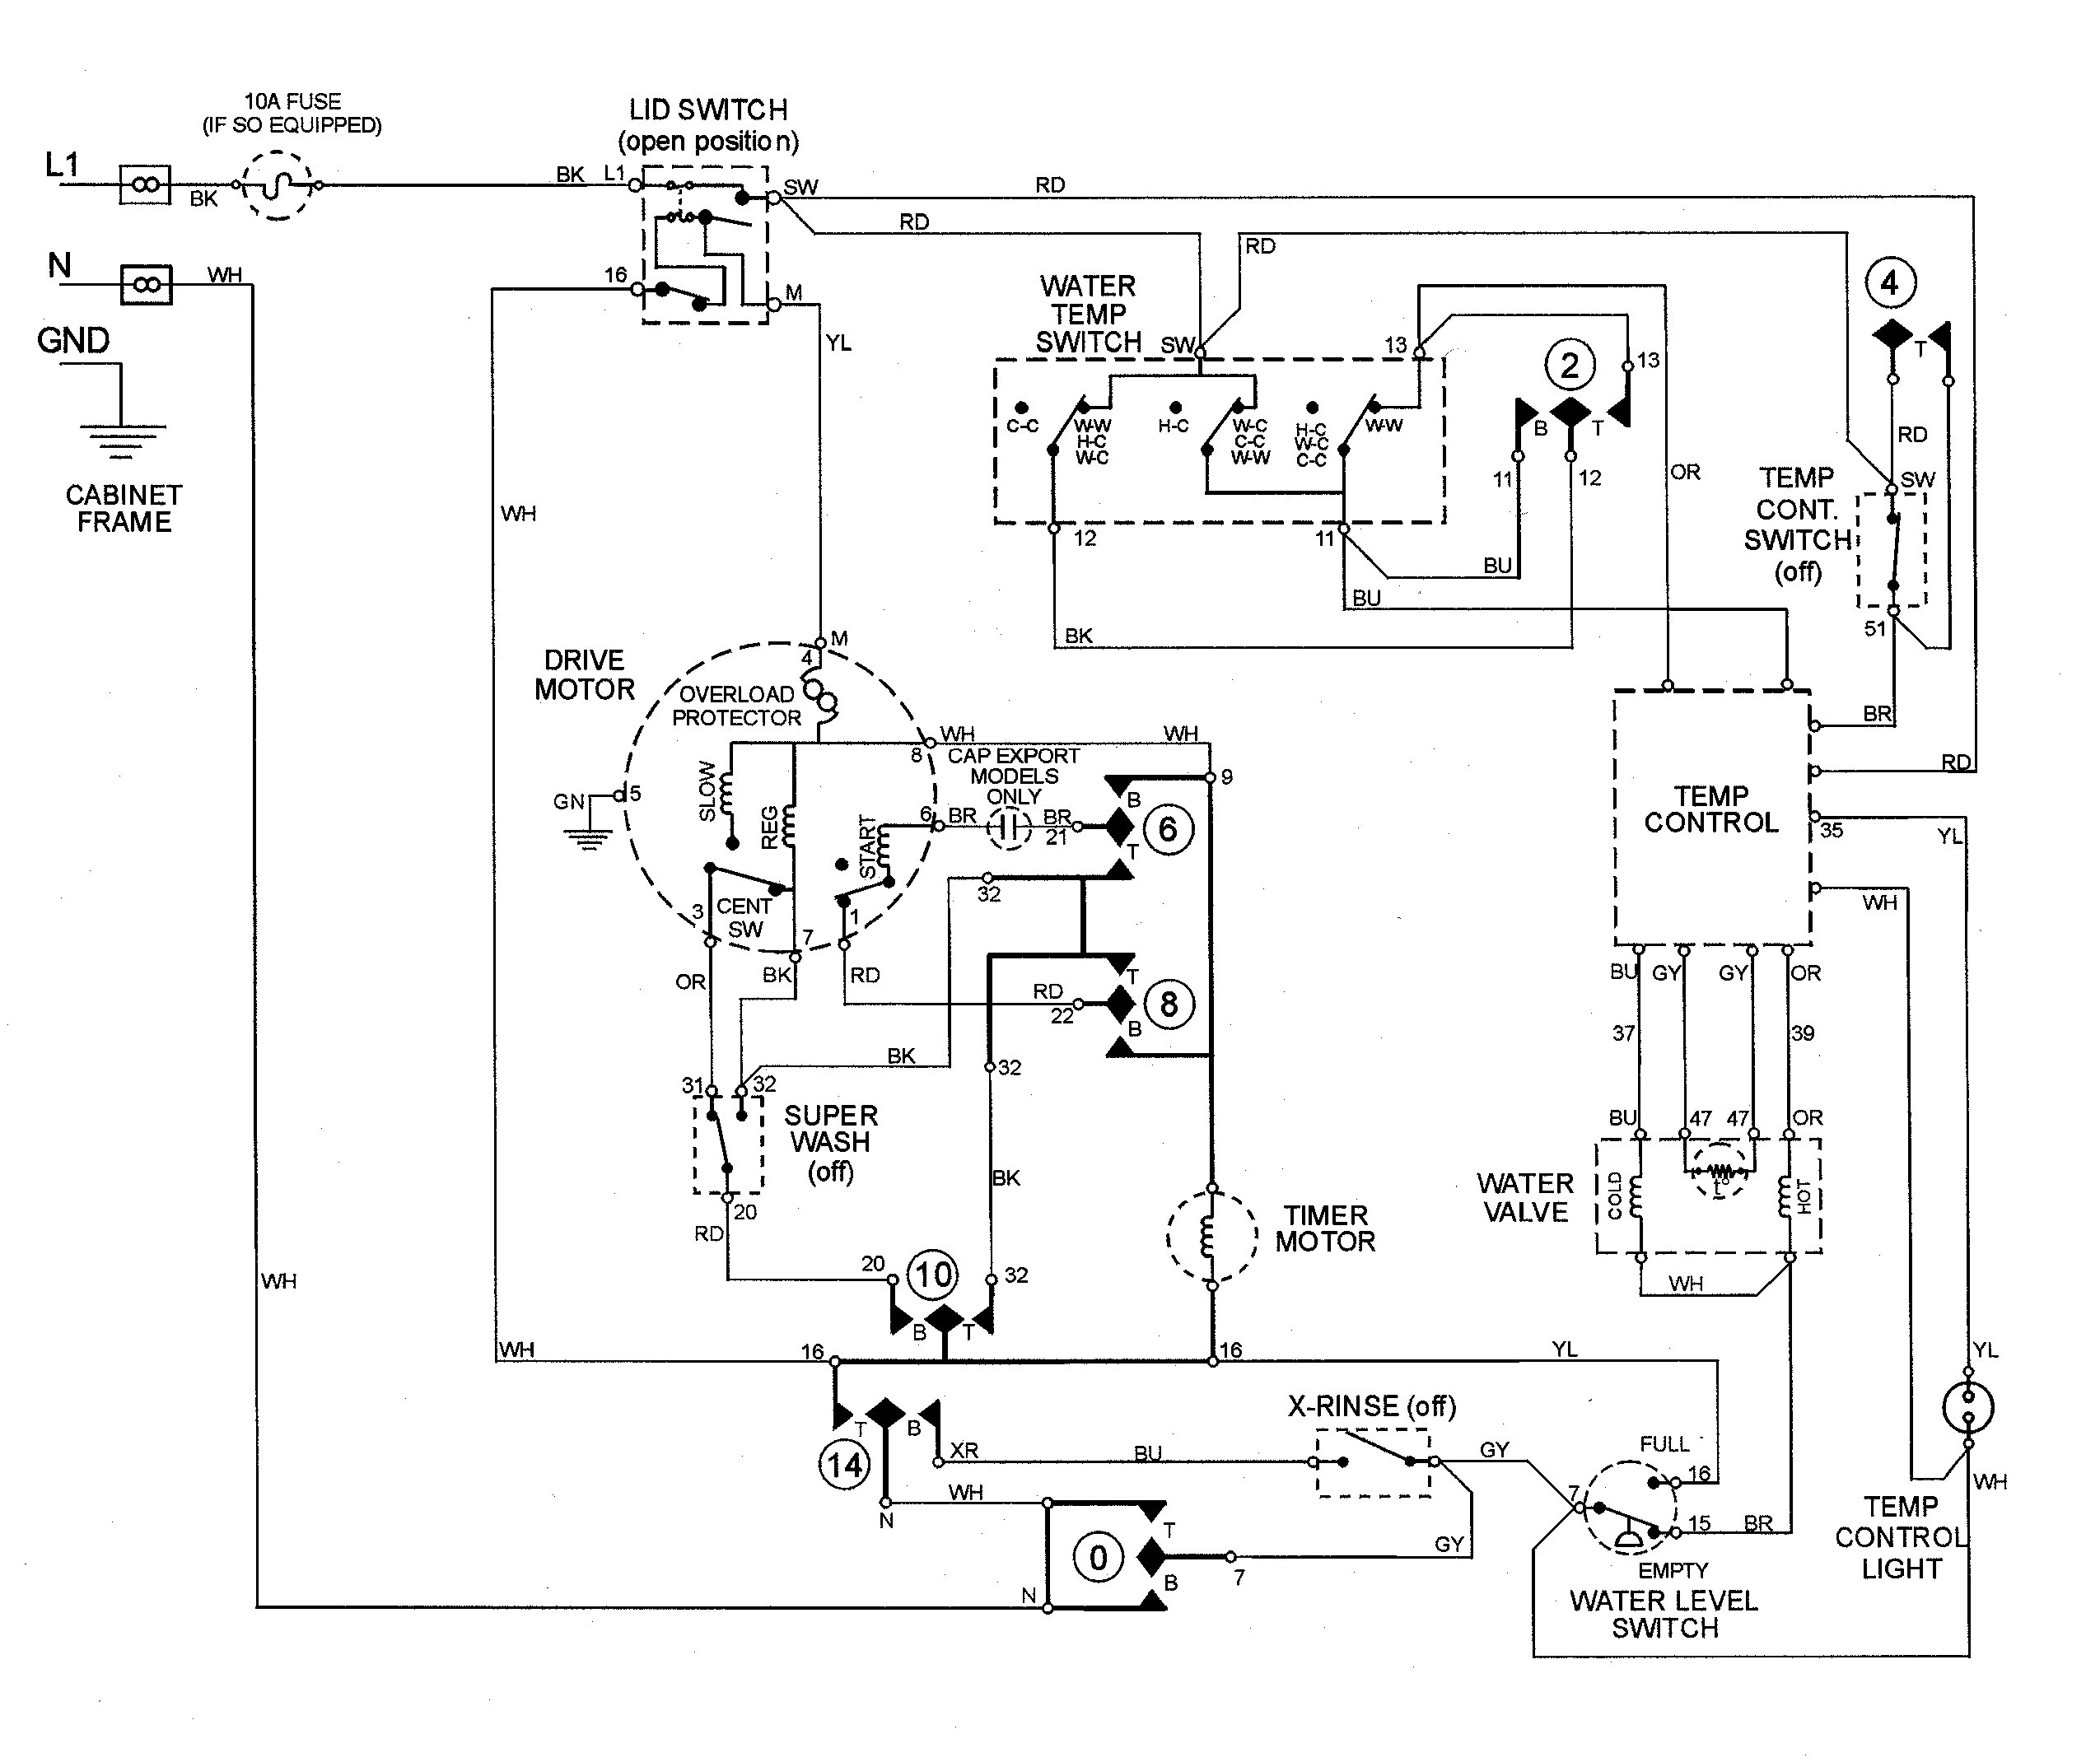 Ge Washer Wiring Diagram Collection Dish Hopper Joey Download Manual Washing Machine Best Showy 10